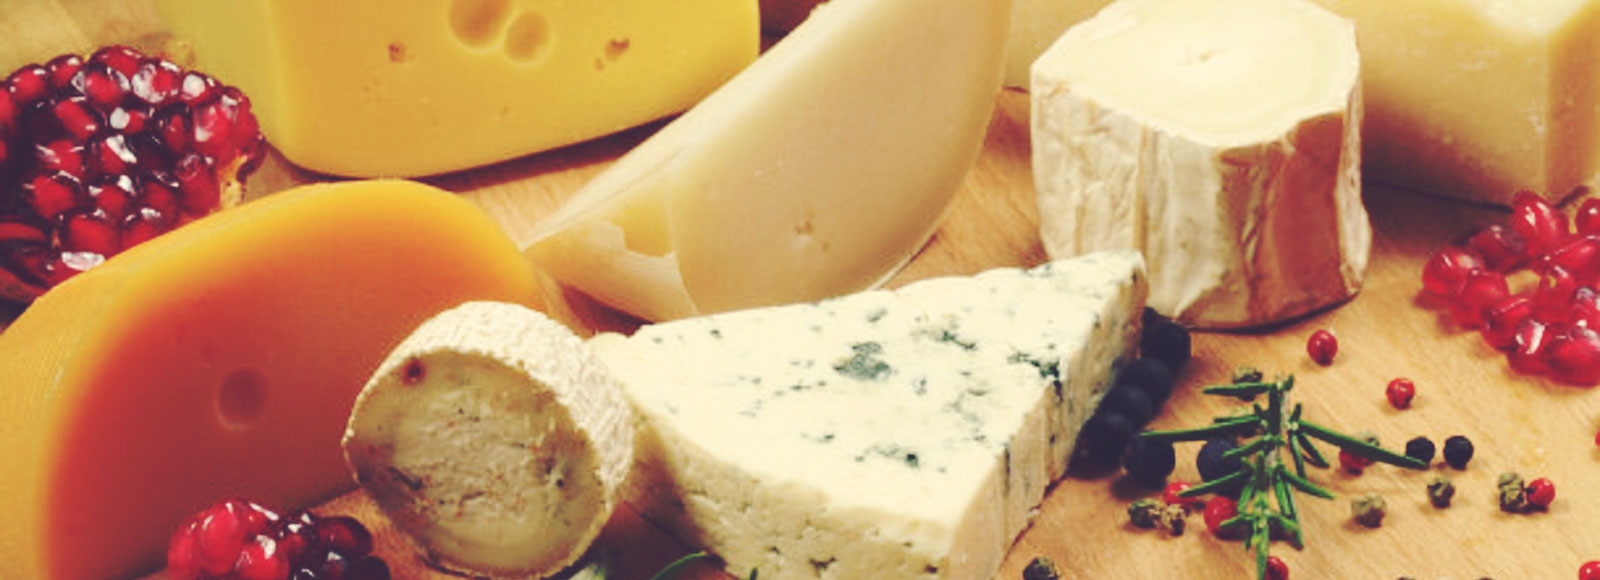 assorted-cheese-board